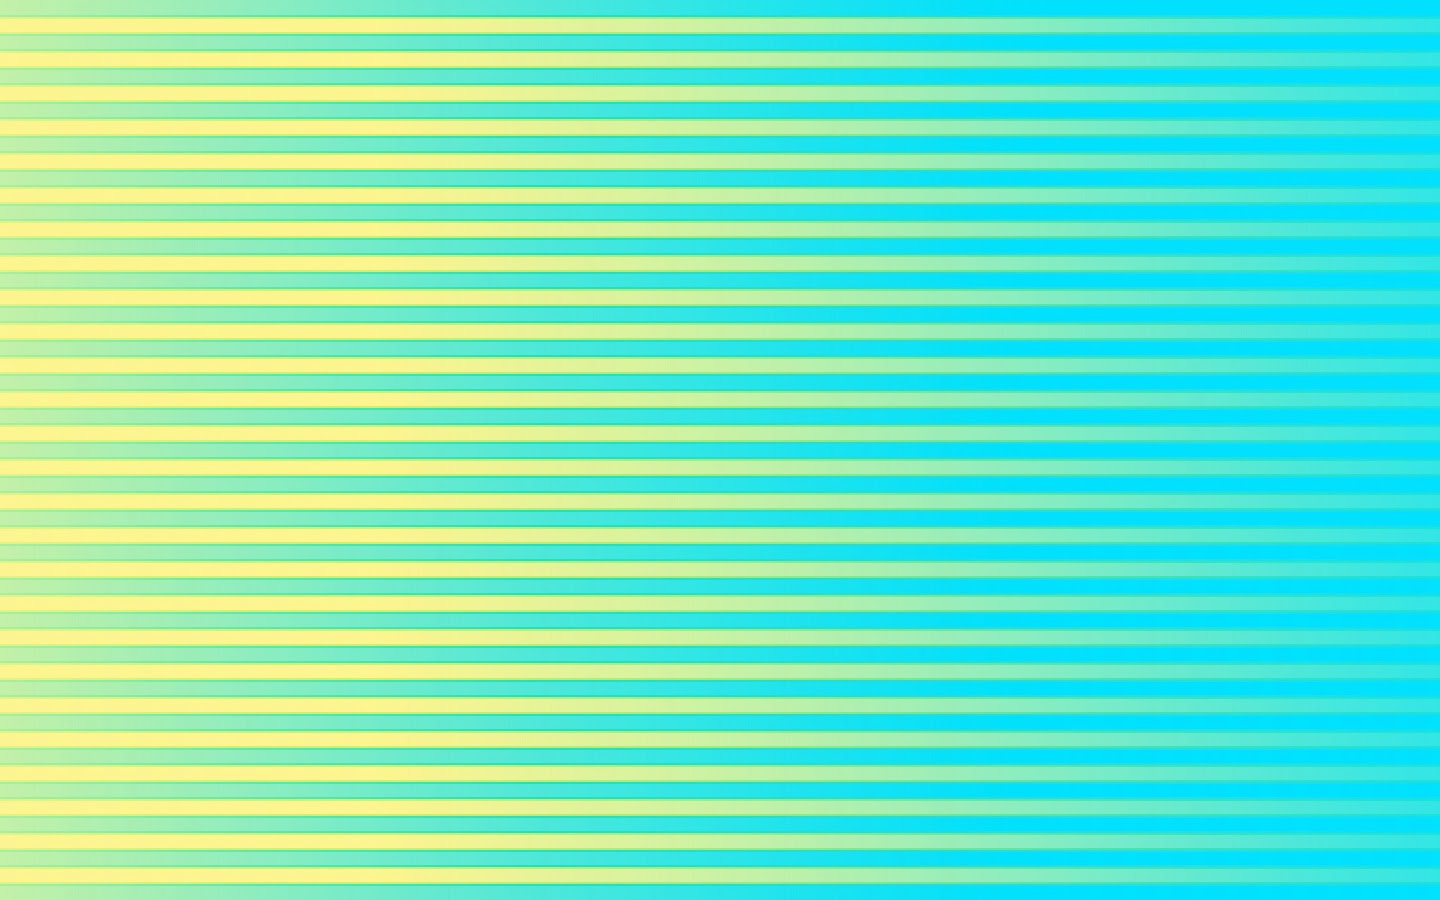 Download Yellow And Blue Striped Wallpaper Gallery